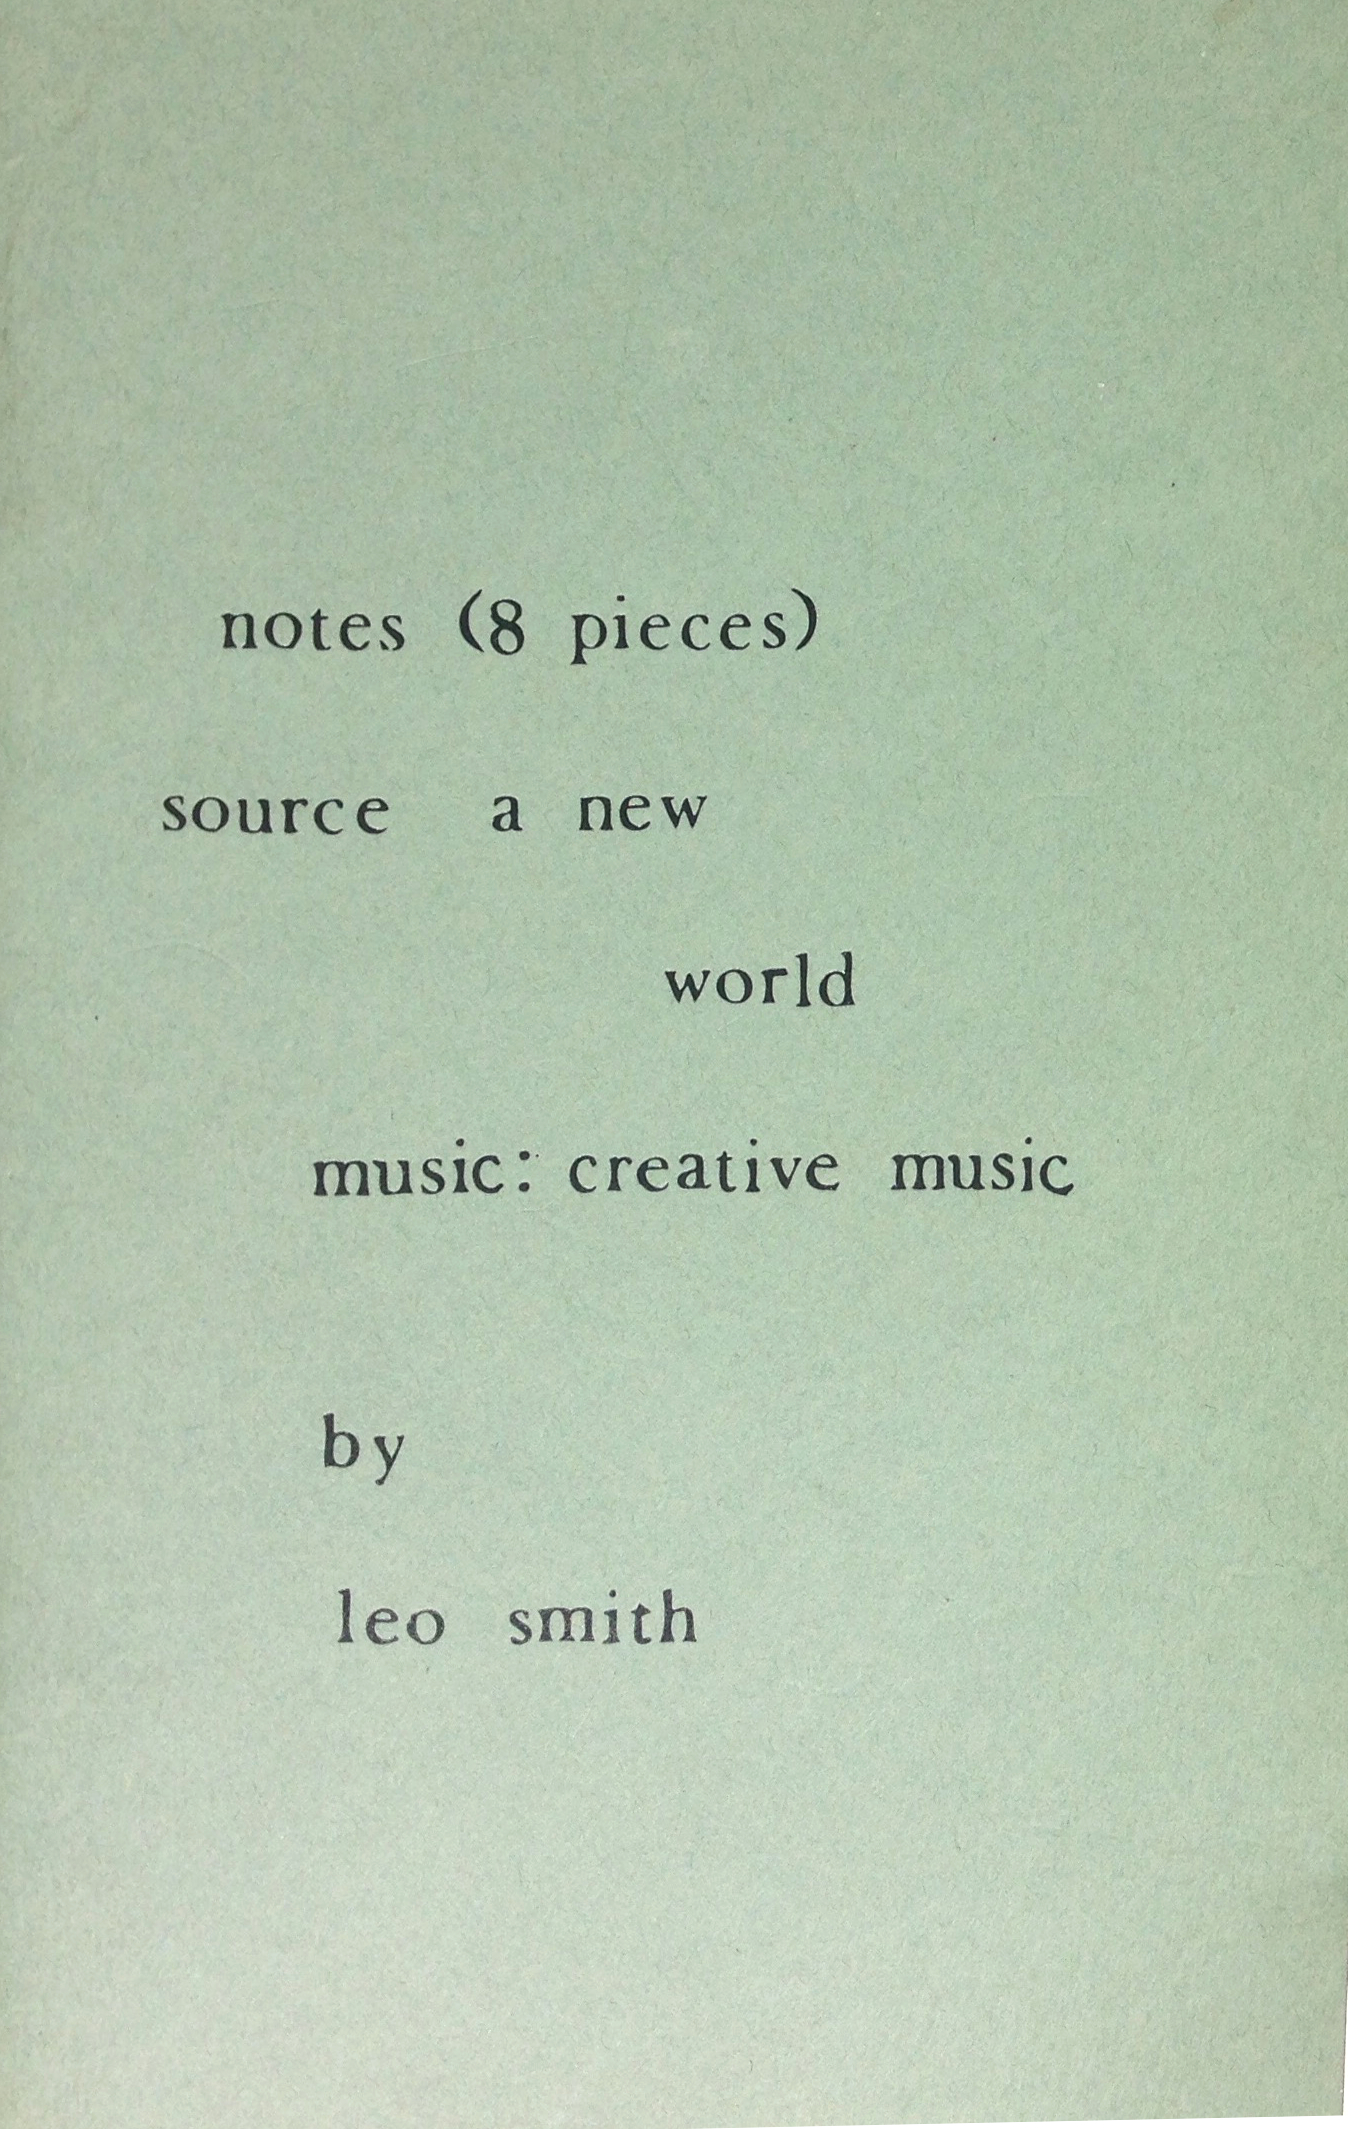 notes (8 pieces) source a new world music: creative music (songs without music #2)